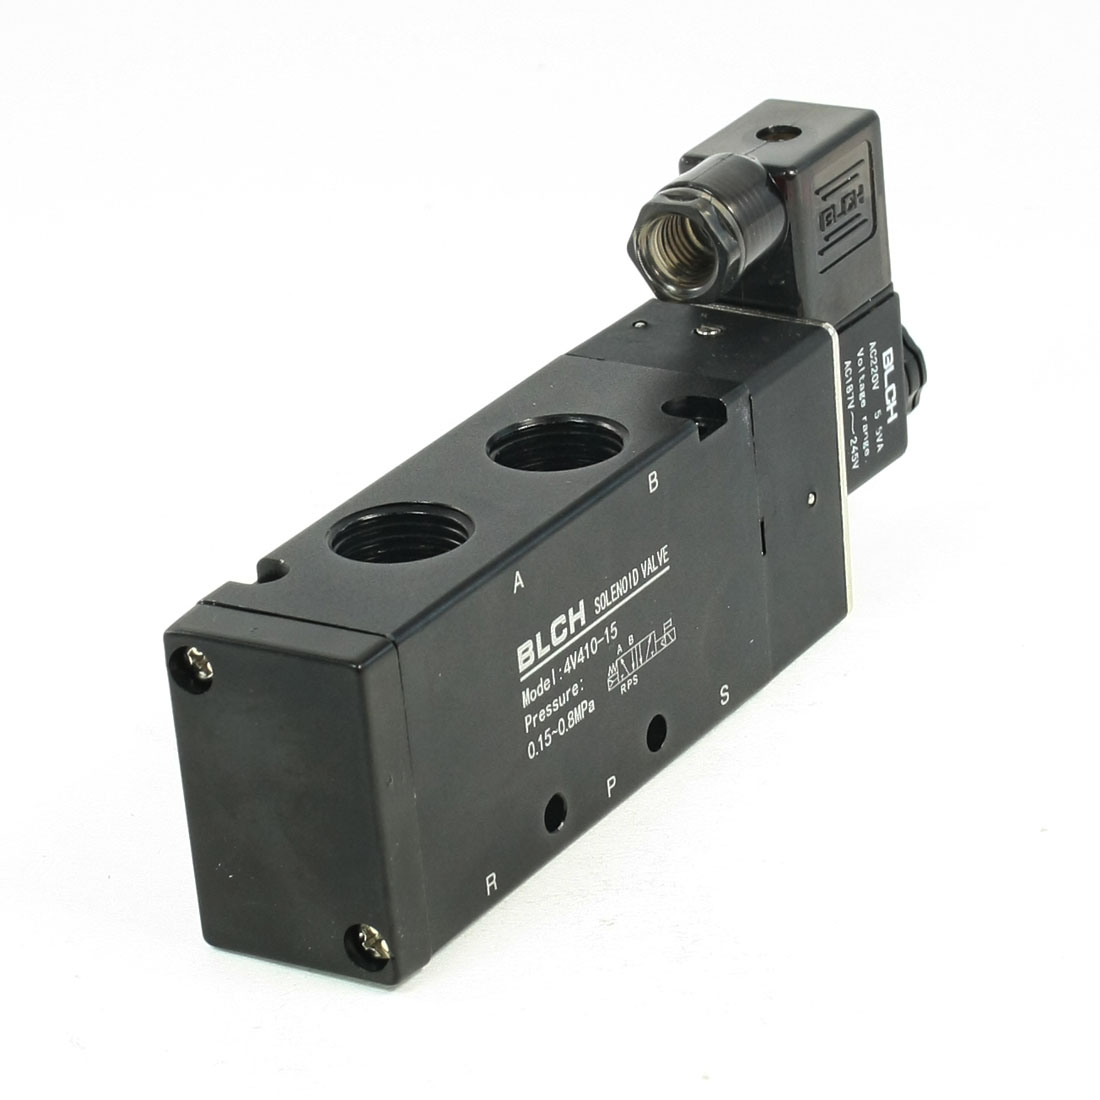 5 Ways 2 Position 4V410-15 Model Pneumatic Solenoid Valve AC220V 5VA